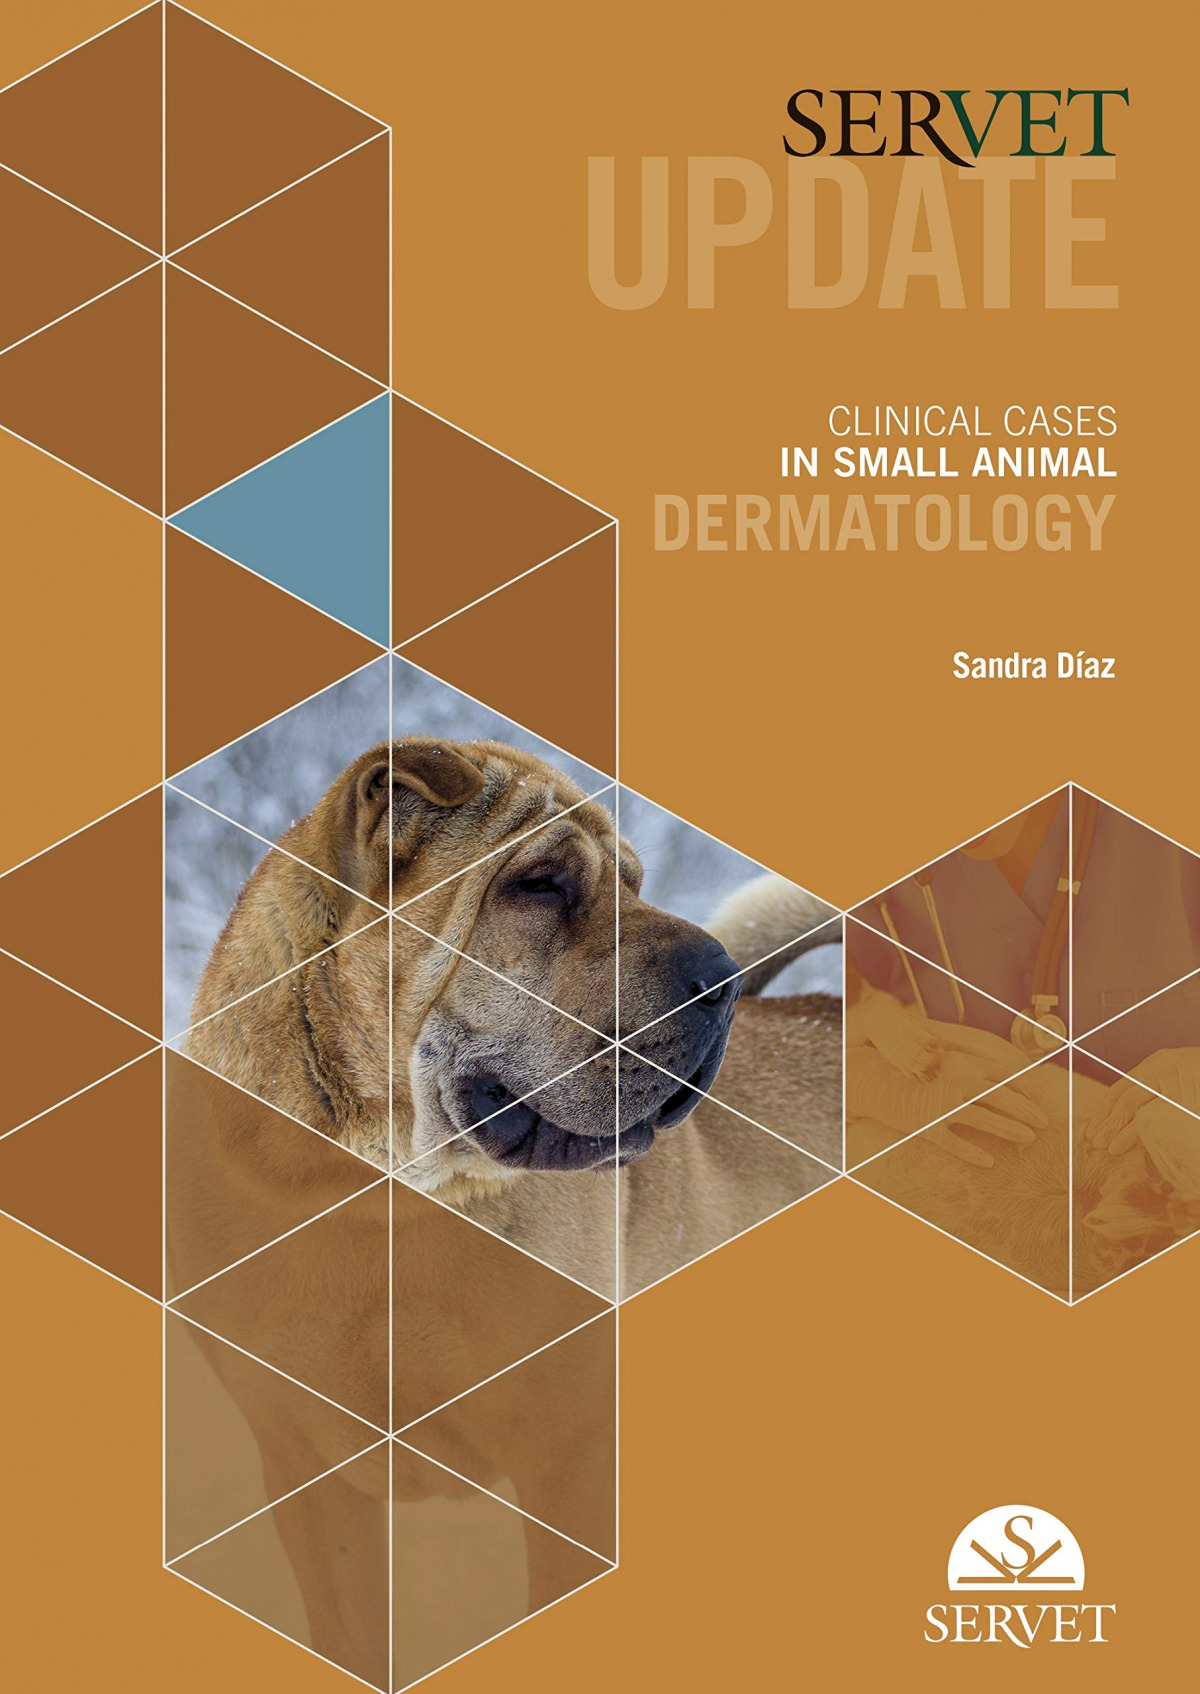 Servet update. Clinical cases in small animal dermatology